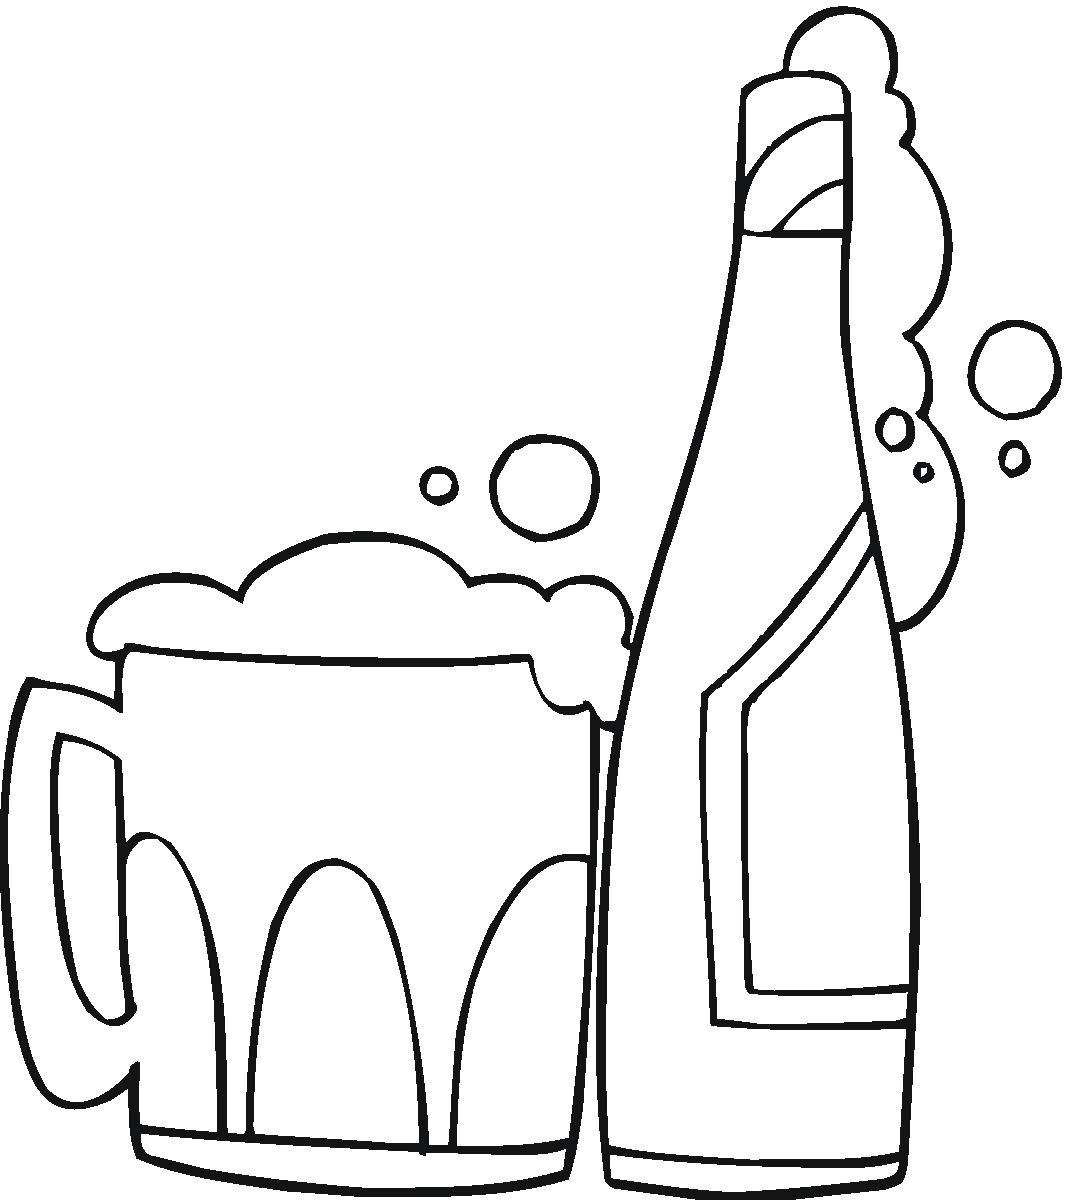 Alcohol clipart cute. Free cliparts download clip